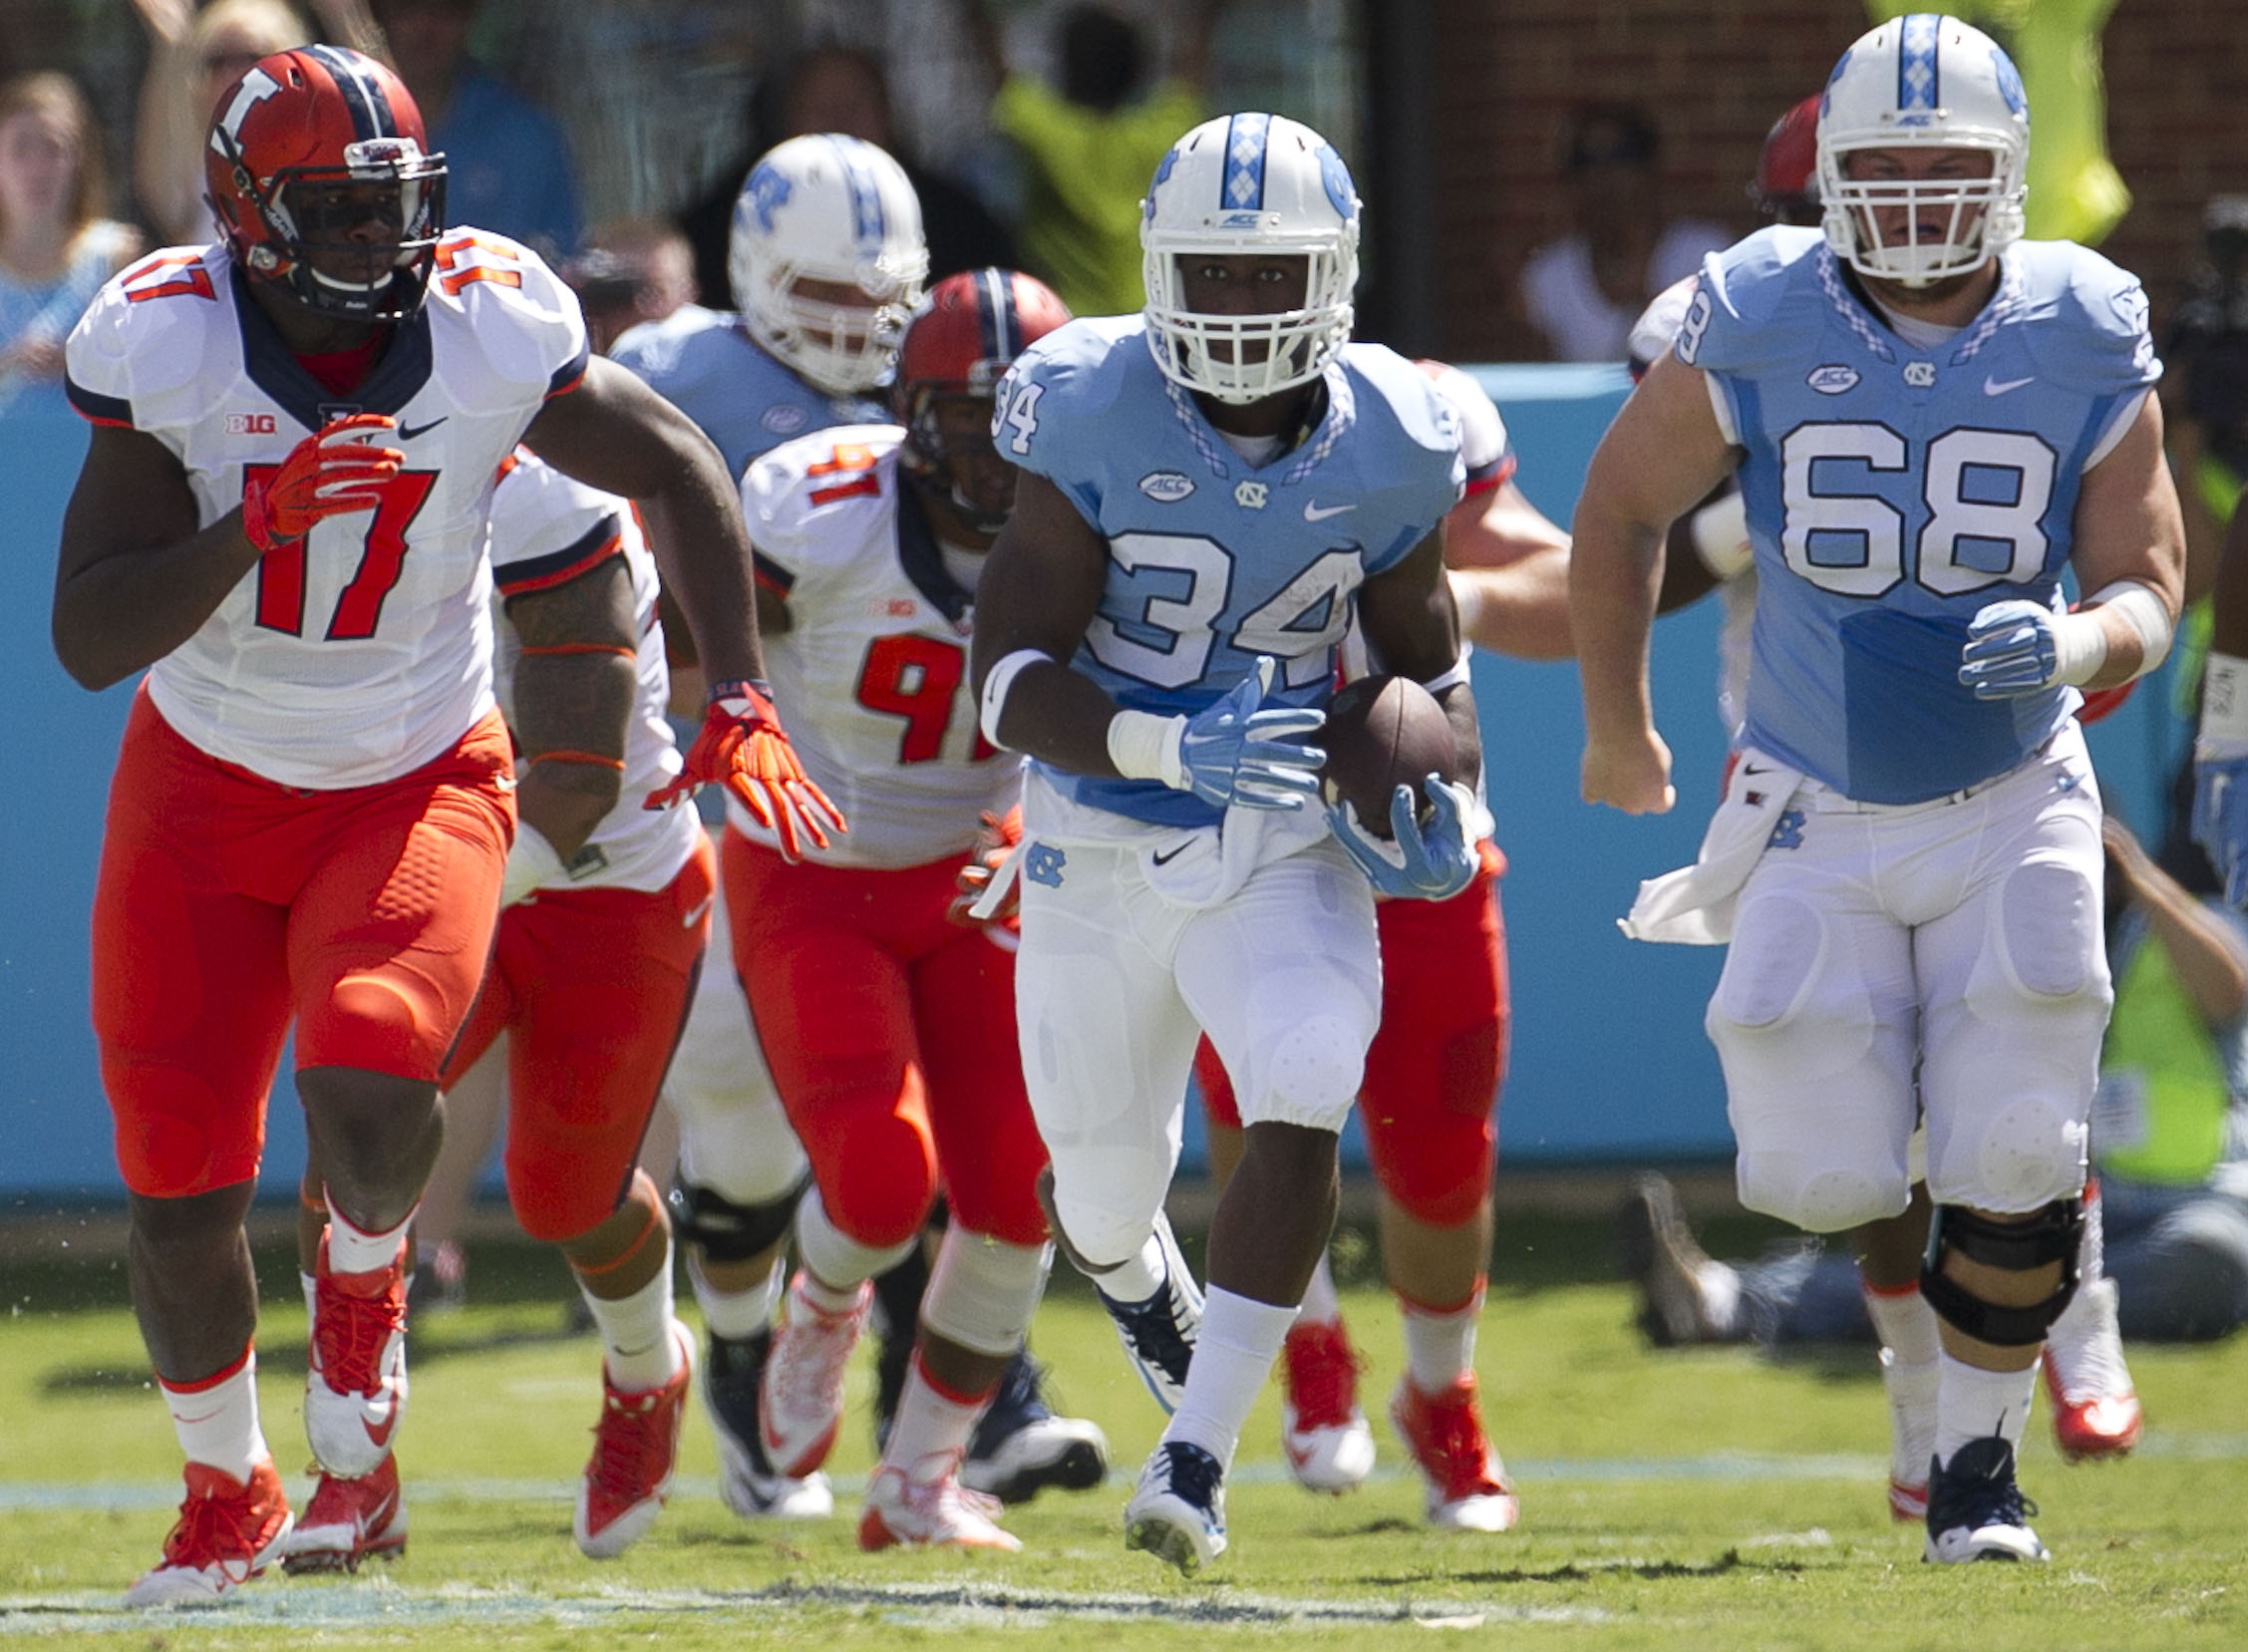 North Carolina tailback Elijah Hood (34) breaks into the open field for a 39 yard gain in the first half of an NCAA football game against Illinois on Saturday, Sept. 19, 2015 at Kenan Stadium in Chapel Hill, N.C. (Robert Willett/The News & Observer via AP